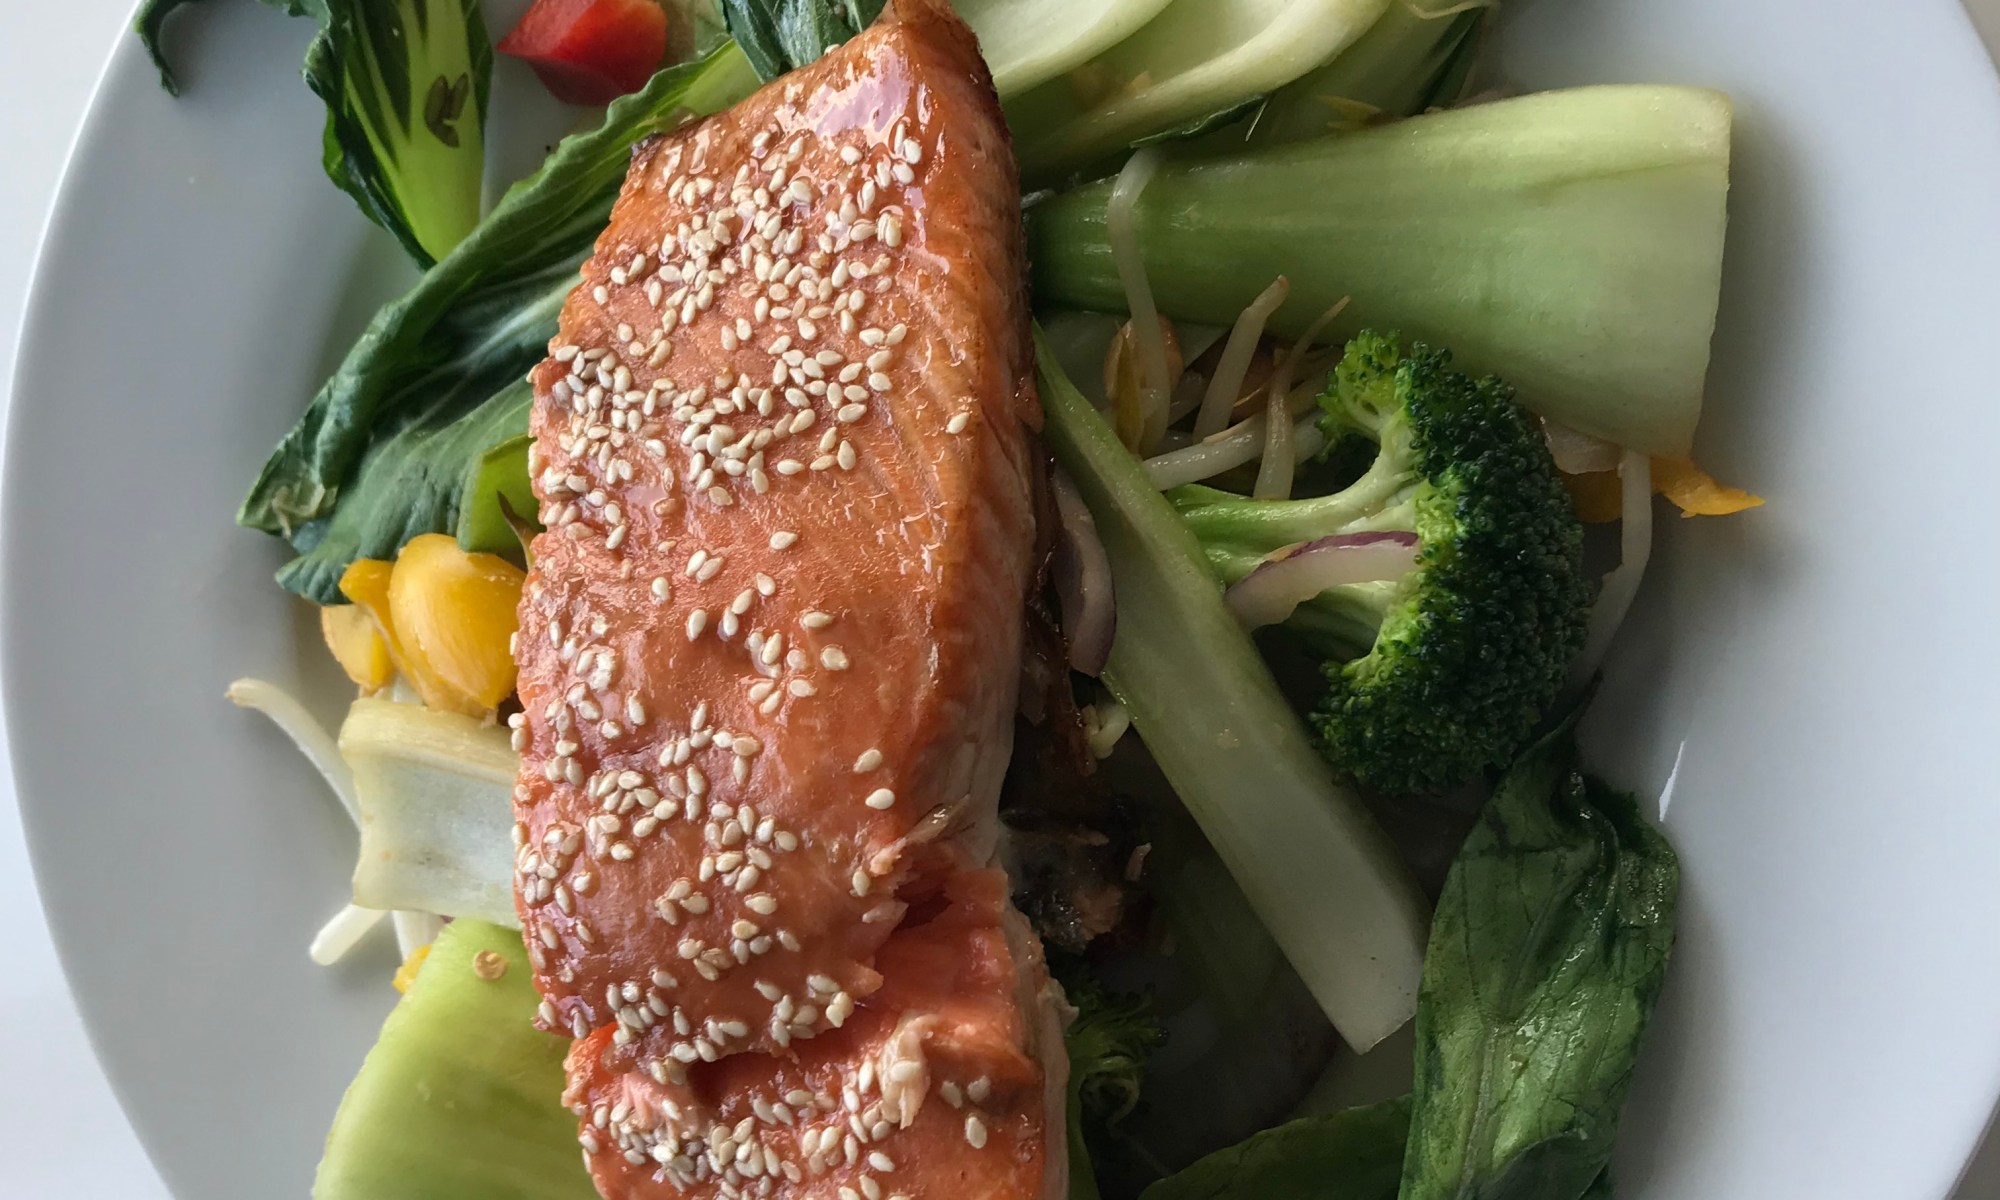 Sesame Seed Roasted Salmon with Stir-fried Vegetables